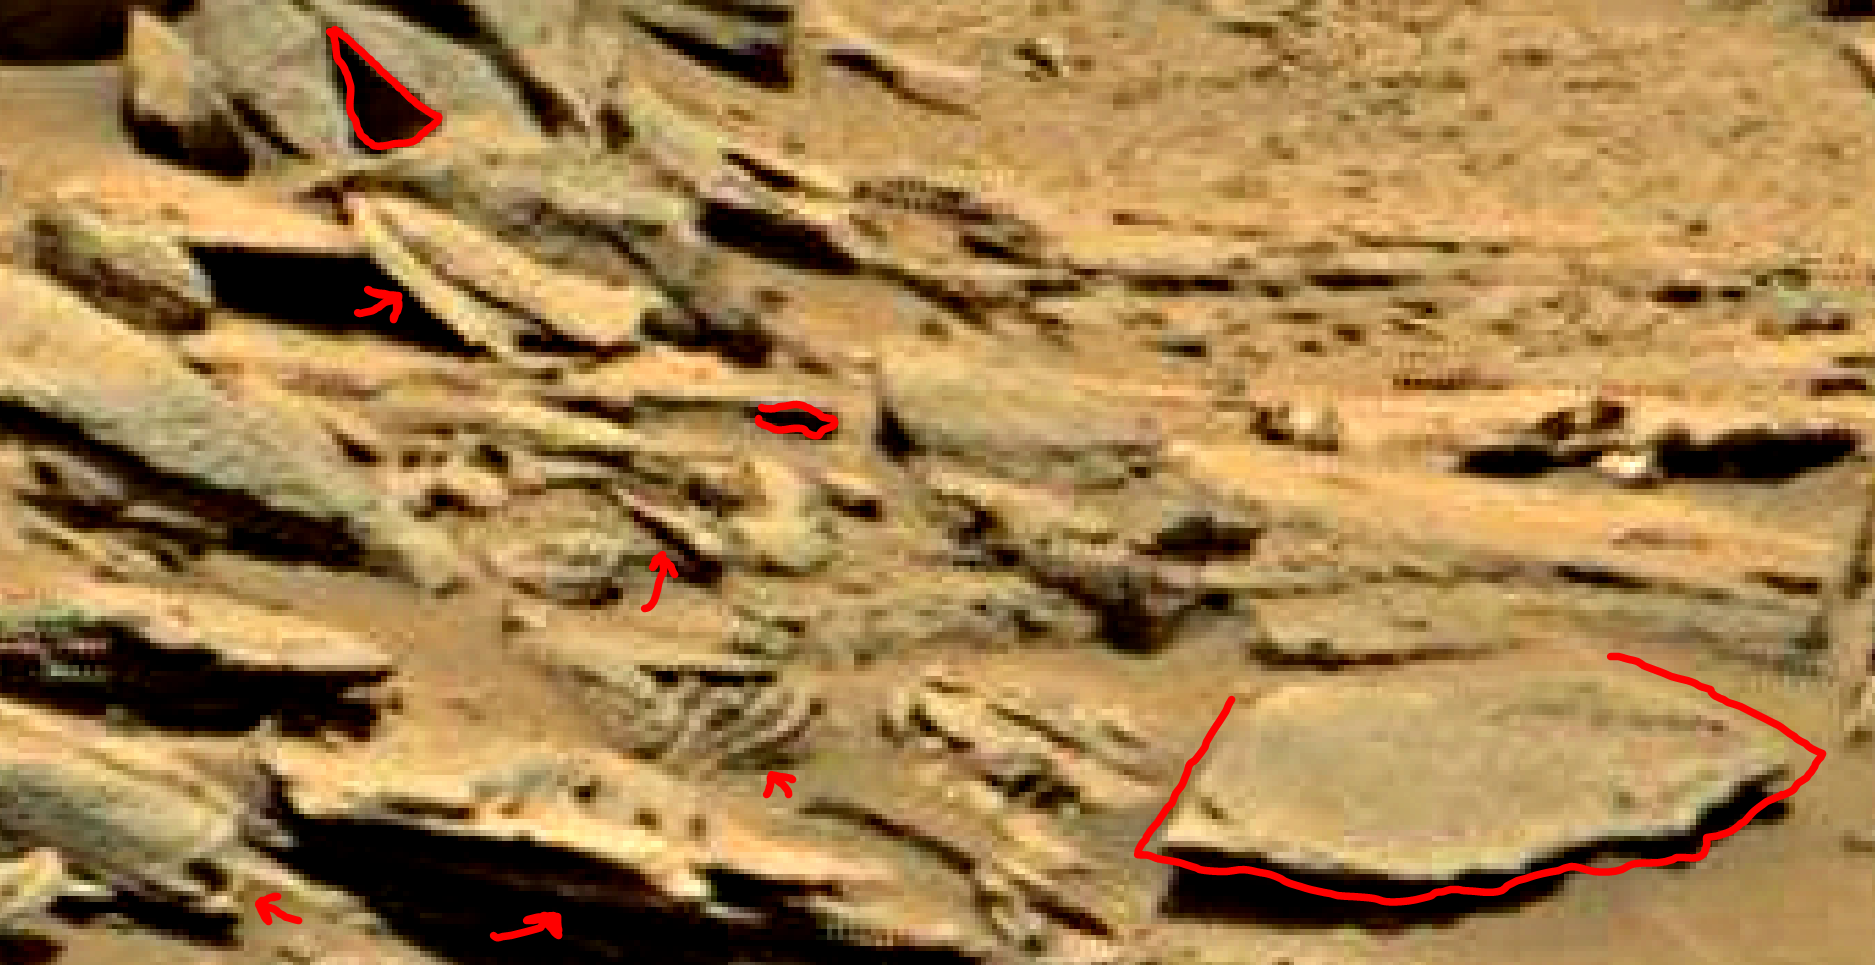 mars sol 1353 anomaly-artifacts 28c1 was life on mars